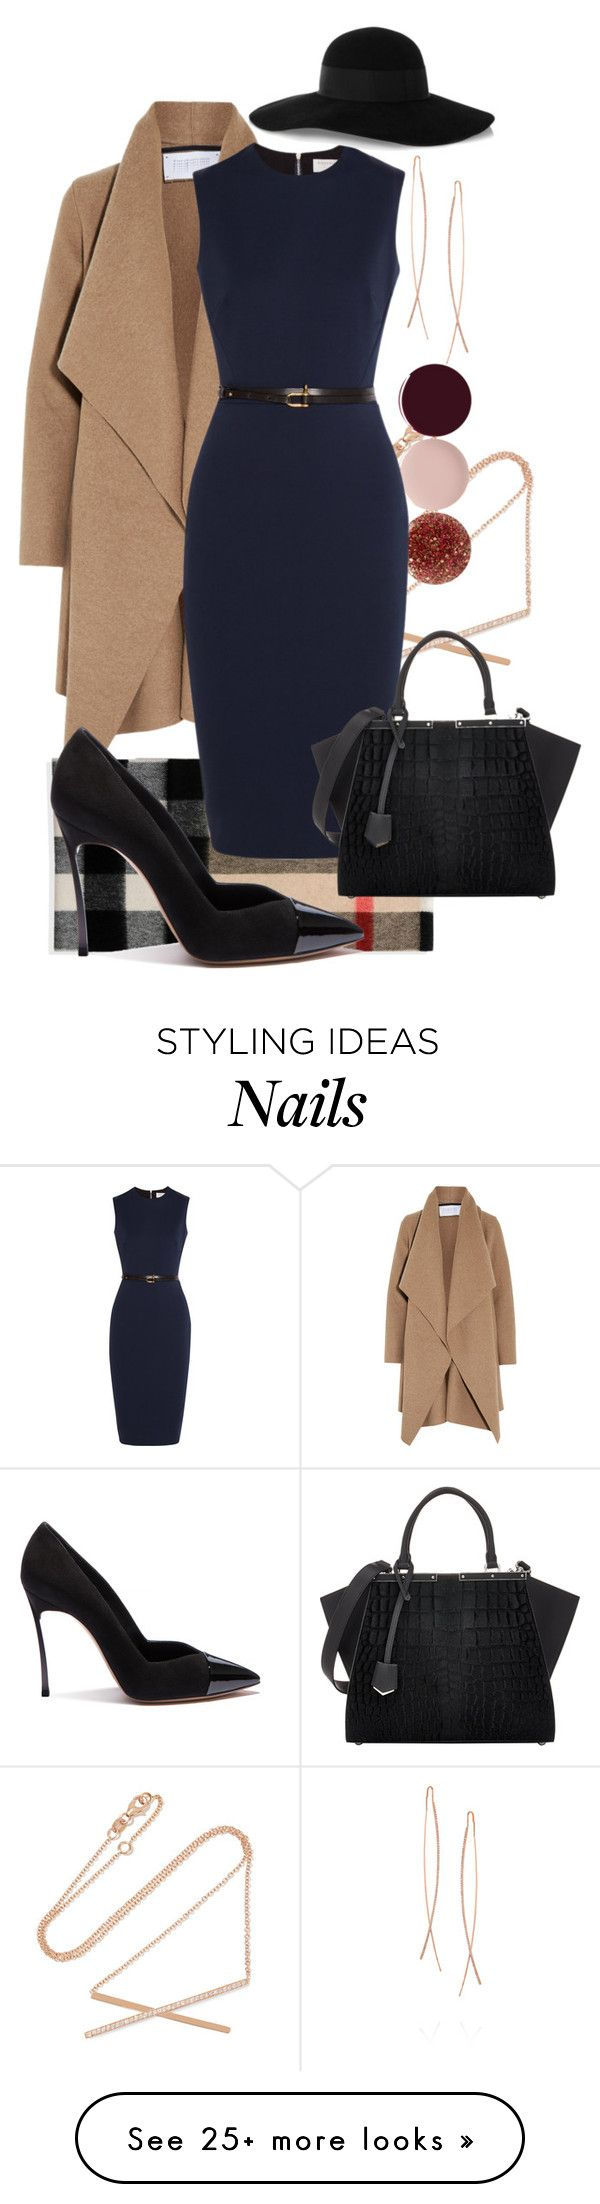 """""""The Power of Navy!"""" by sabrina89 on Polyvore featuring Carbon & Hyde, Diane Kordas, Burberry, Nails Inc., Harris Wharf London, Victoria Beckham, Casadei, Eugenia Kim, Fendi and WorkWear"""